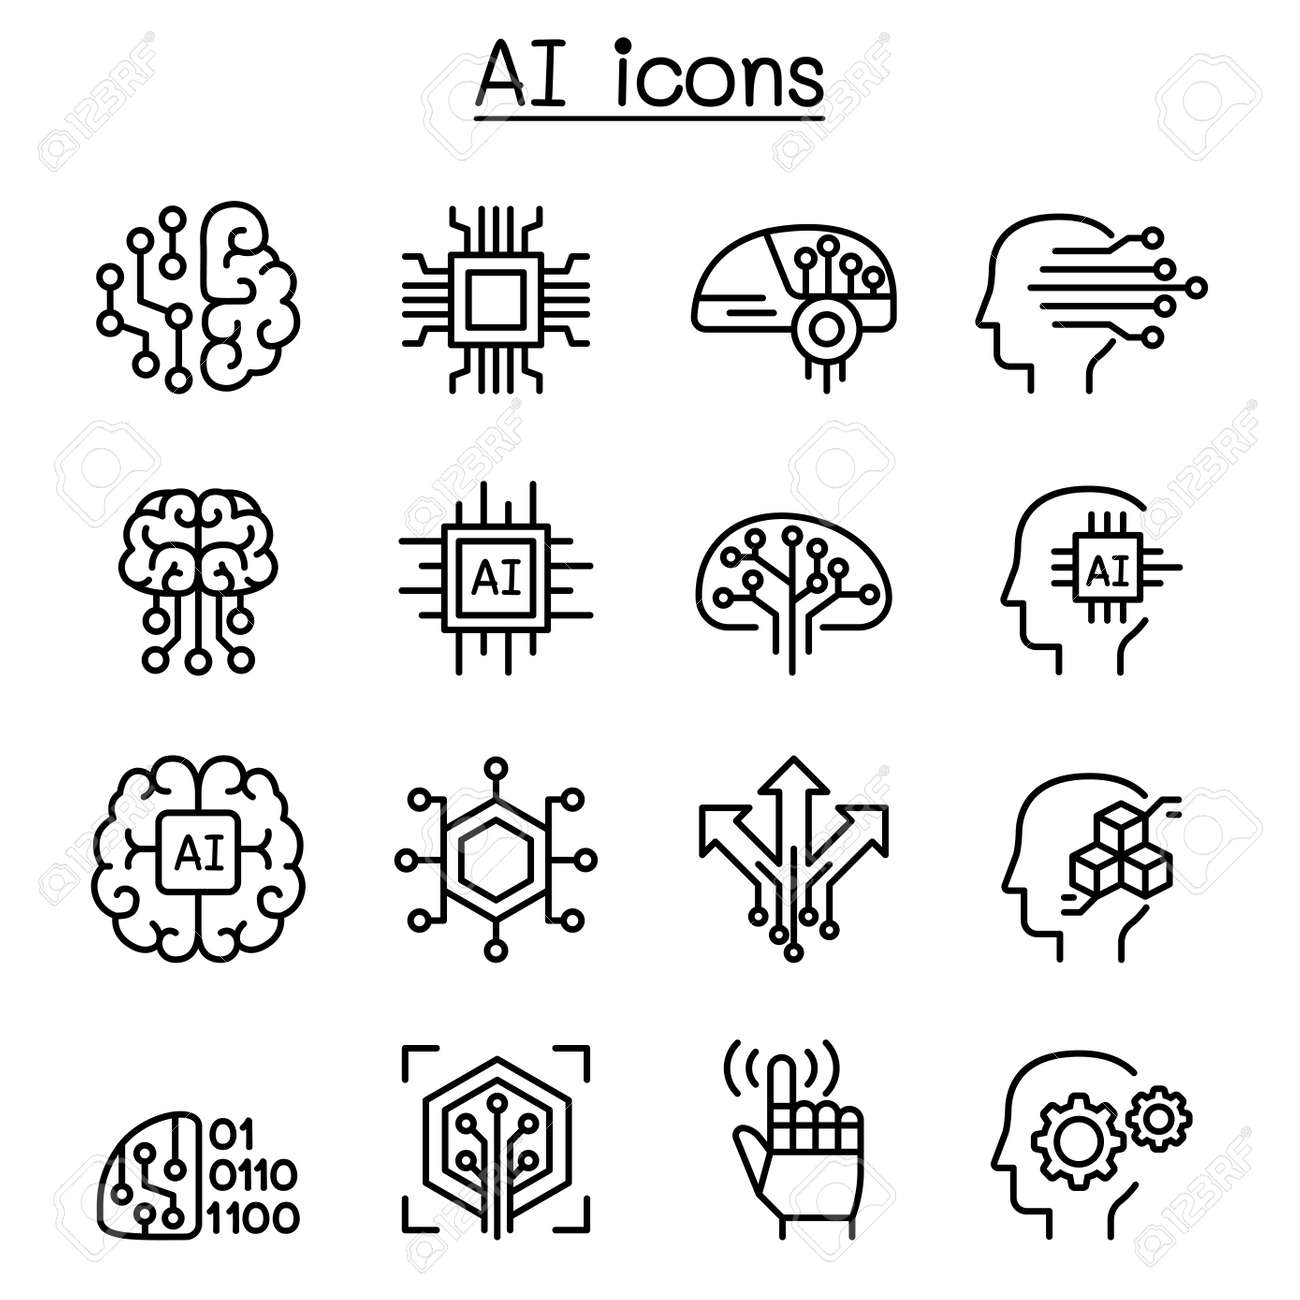 AI, Artificial intelligence icon set in thin line style - 109508022